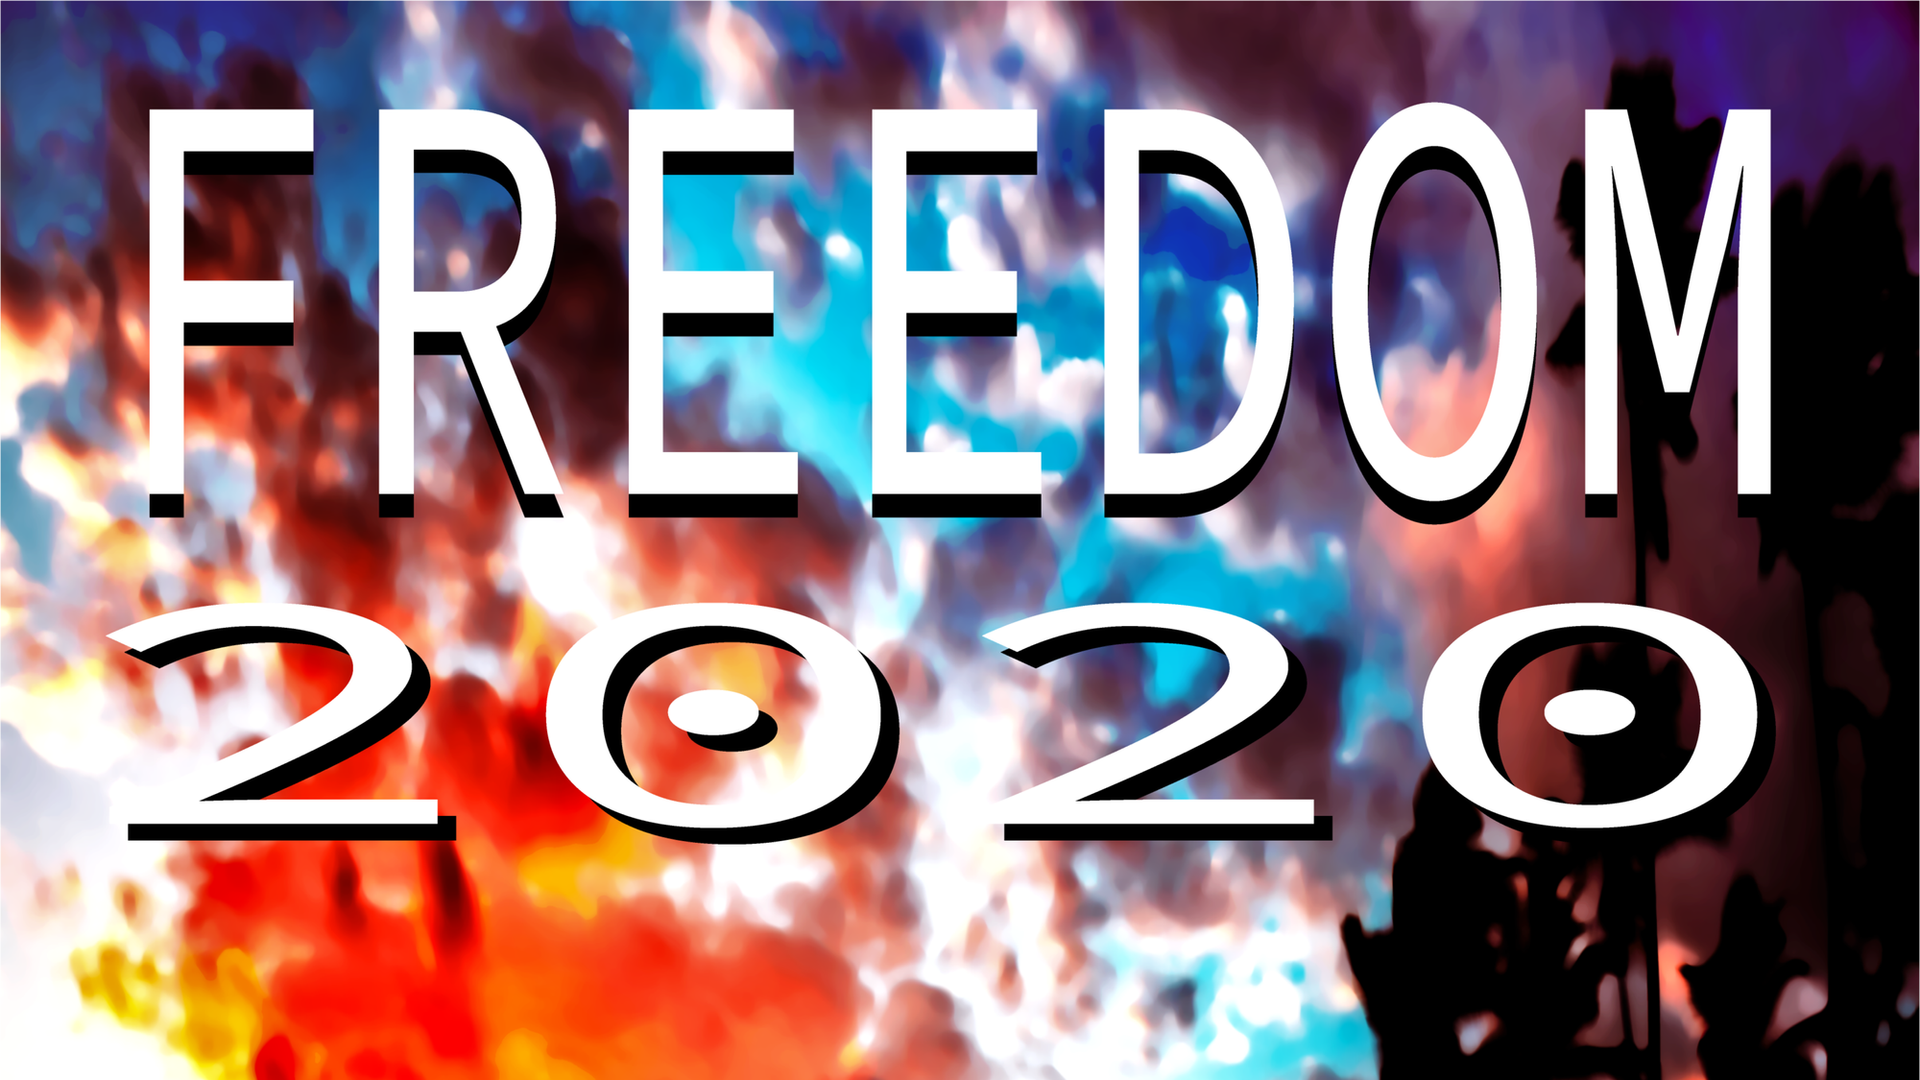 FREEDOM2020-POSTER-m-Logos.png